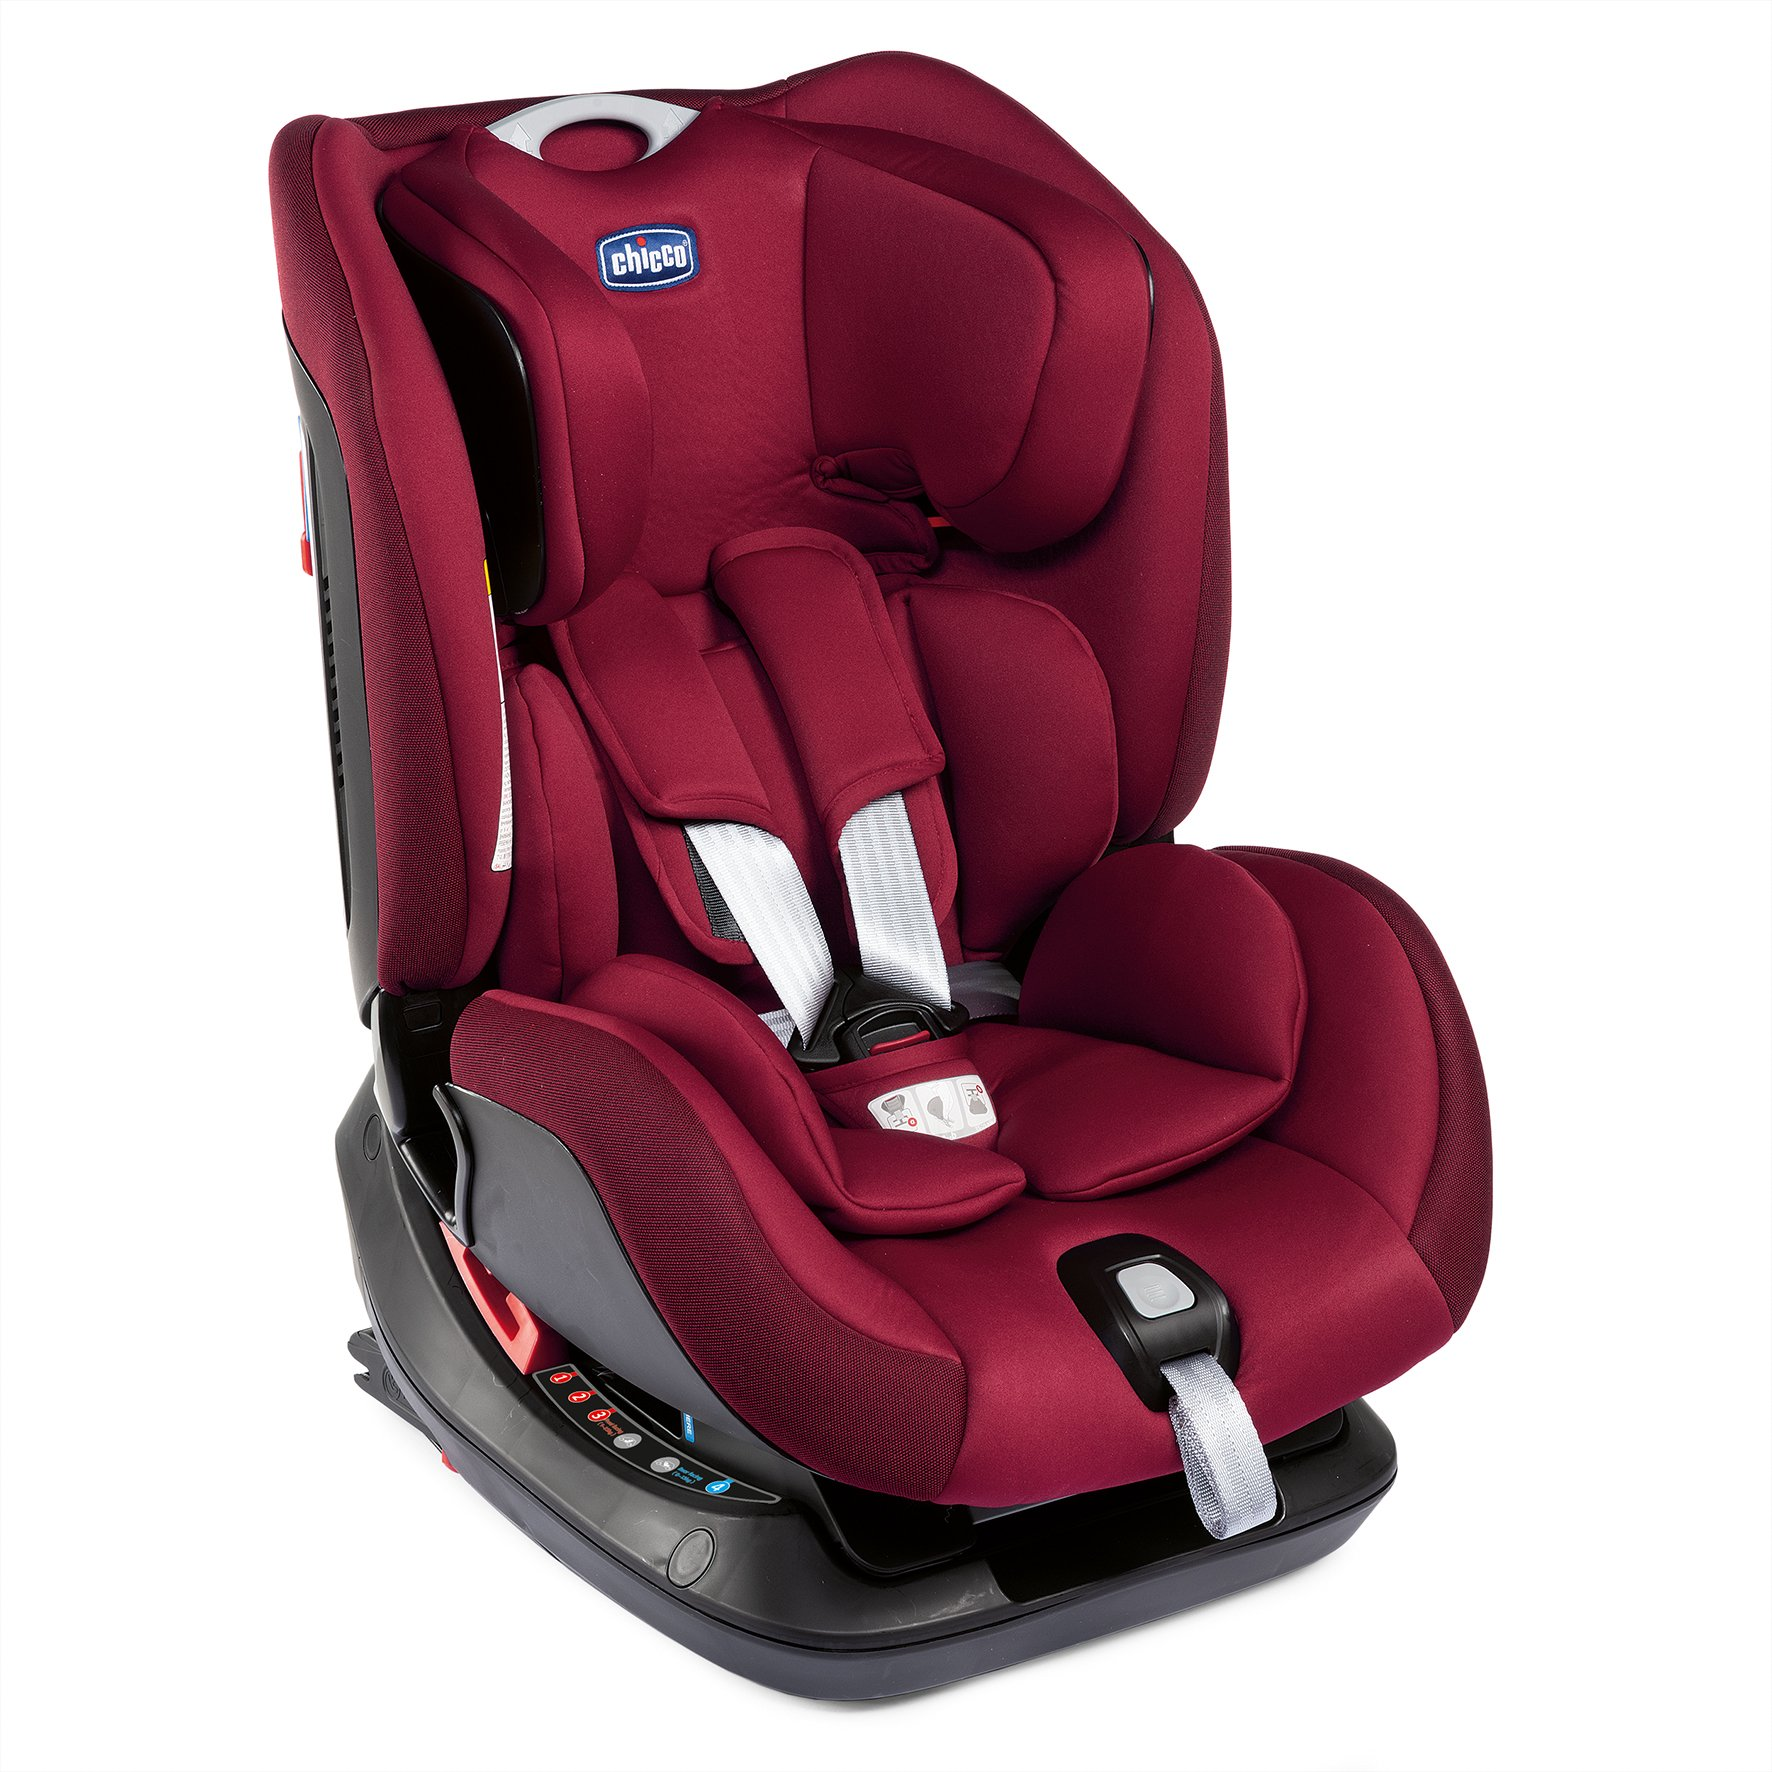 Chicco Child Car Seat Sirio 012 2020